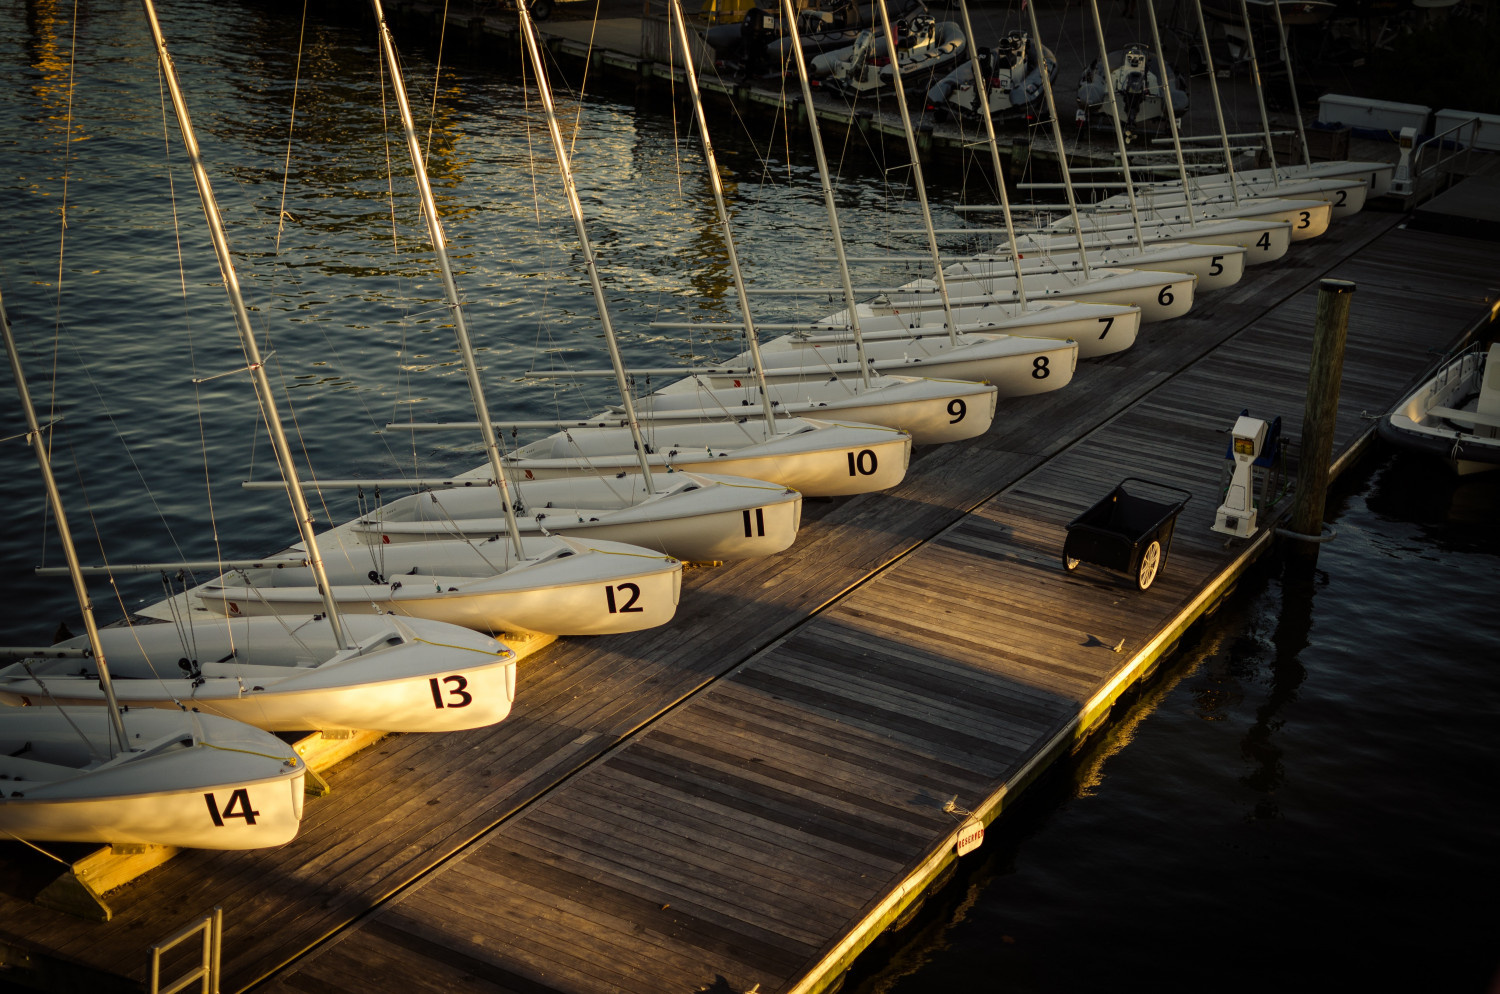 Row of sailing dinghies in golden hour at the dock